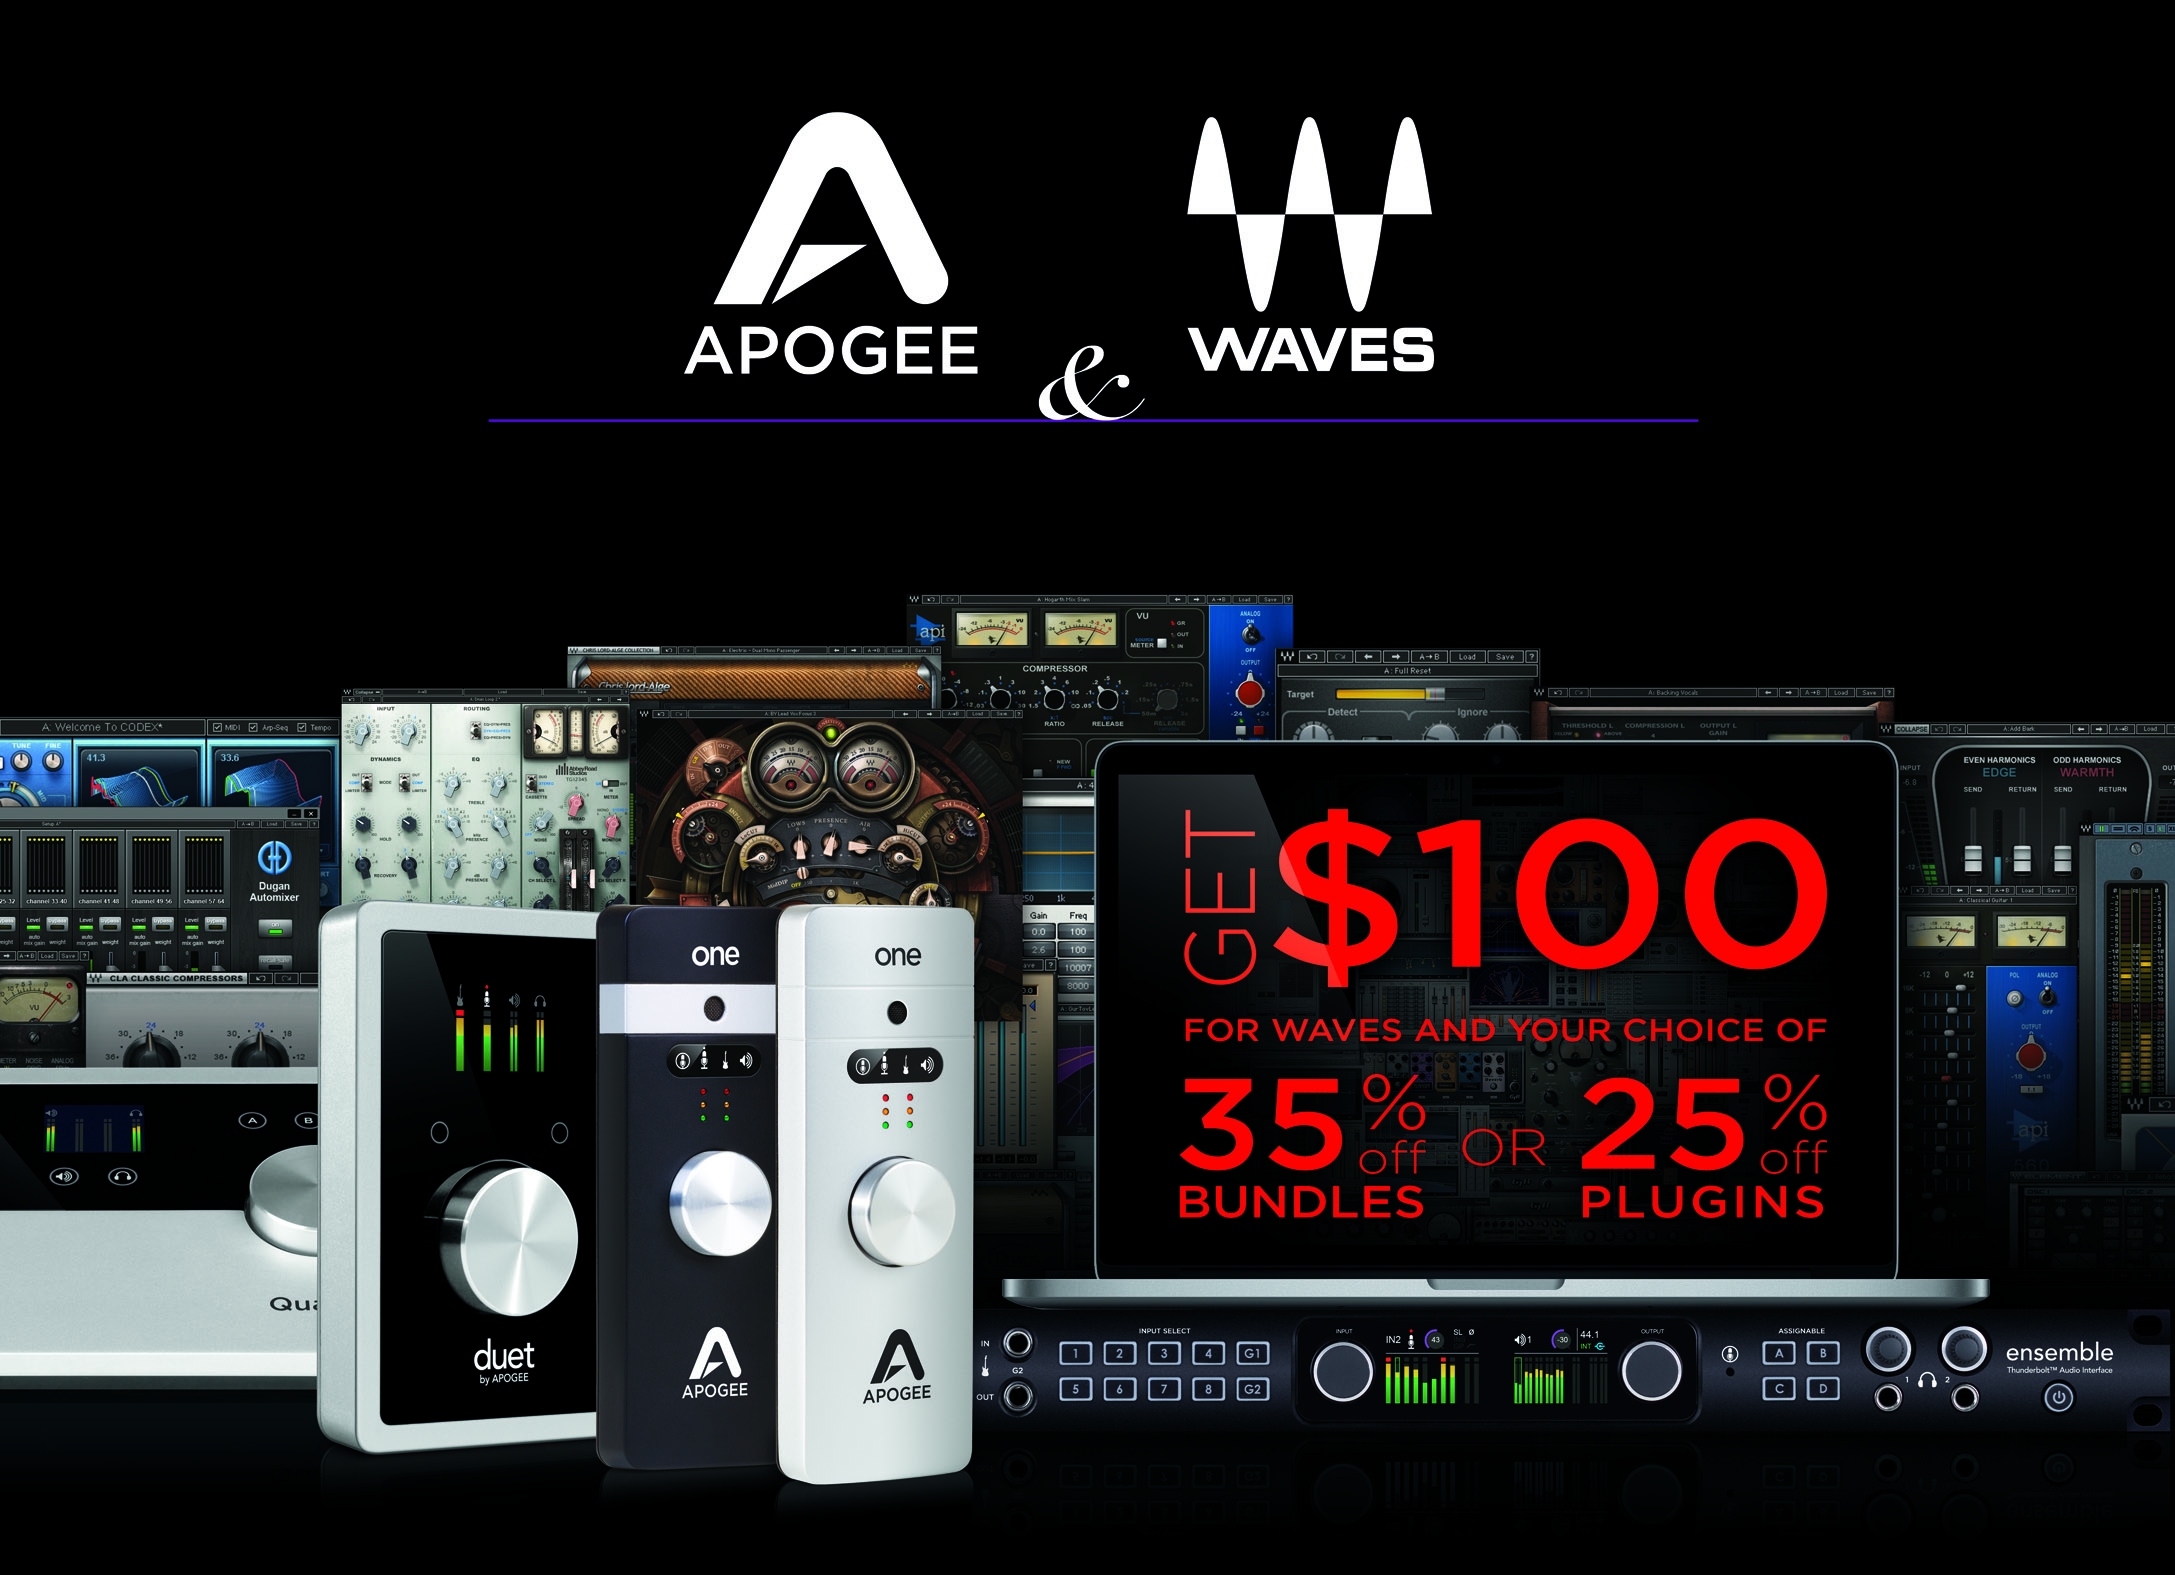 Waves+Apogee